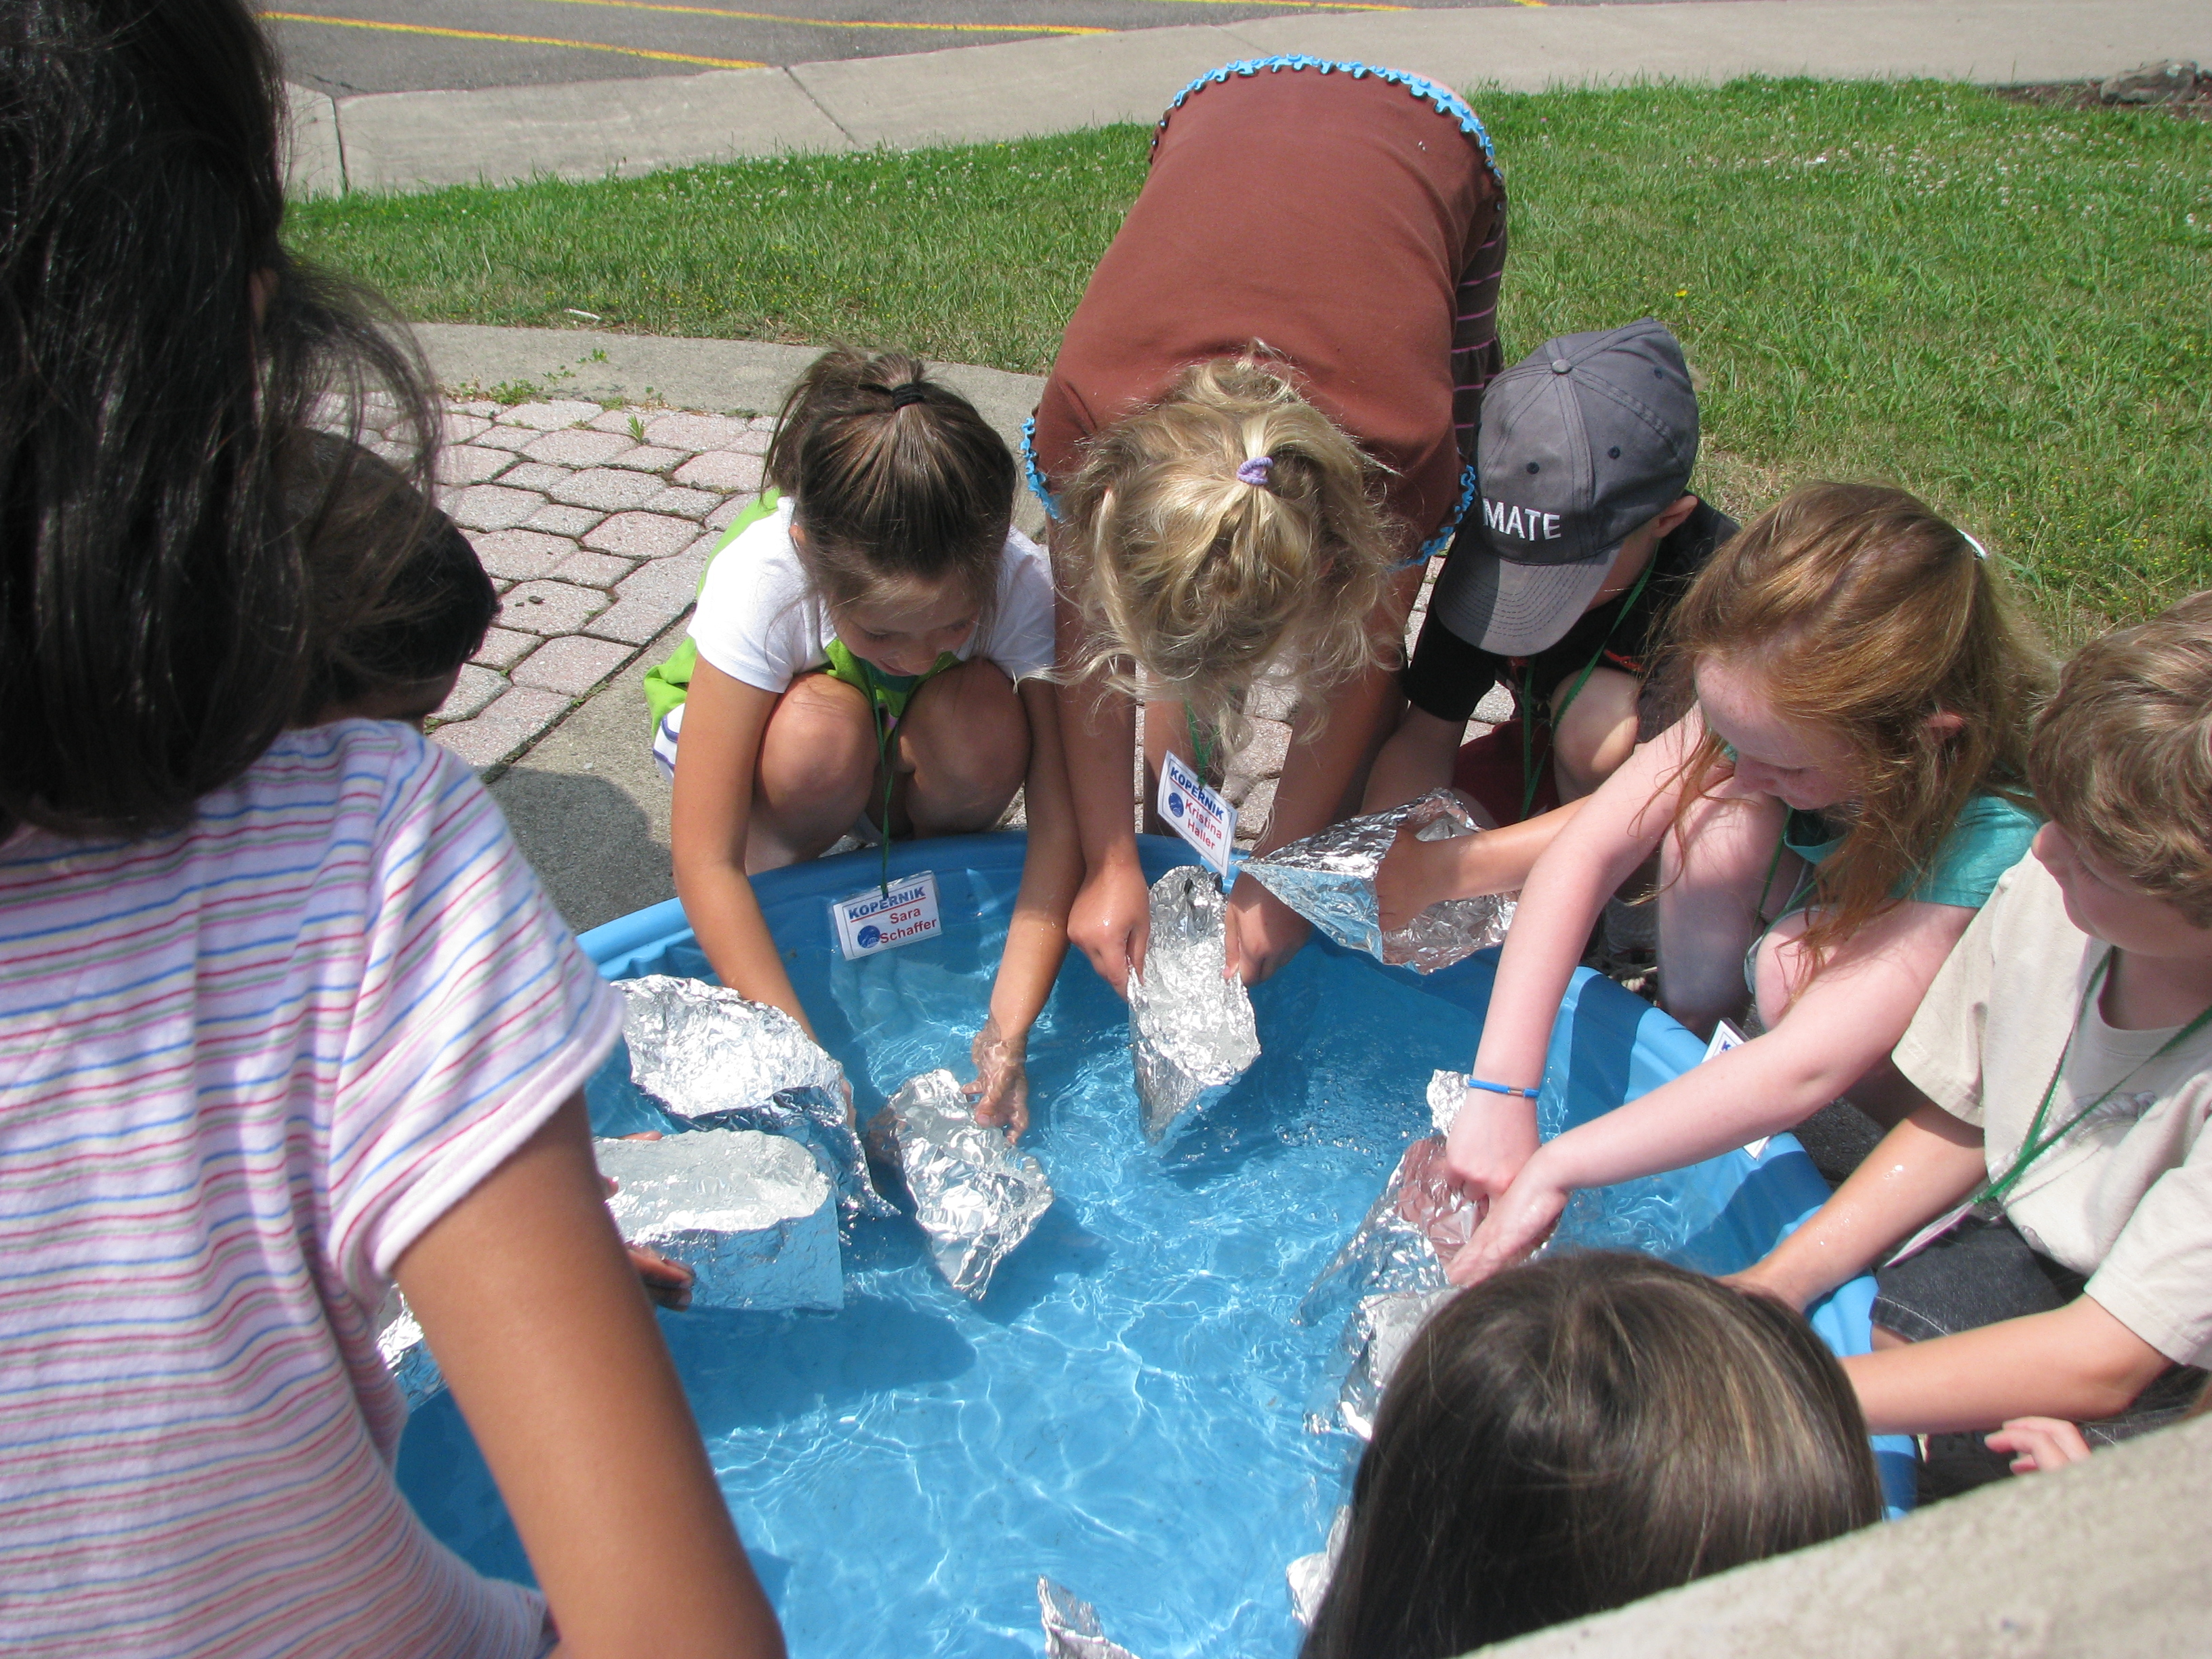 Summer camps kopernik observatory science center each day will have a different theme daily activities for the students will range from building electric circuits experimenting with bubbling liquids malvernweather Gallery